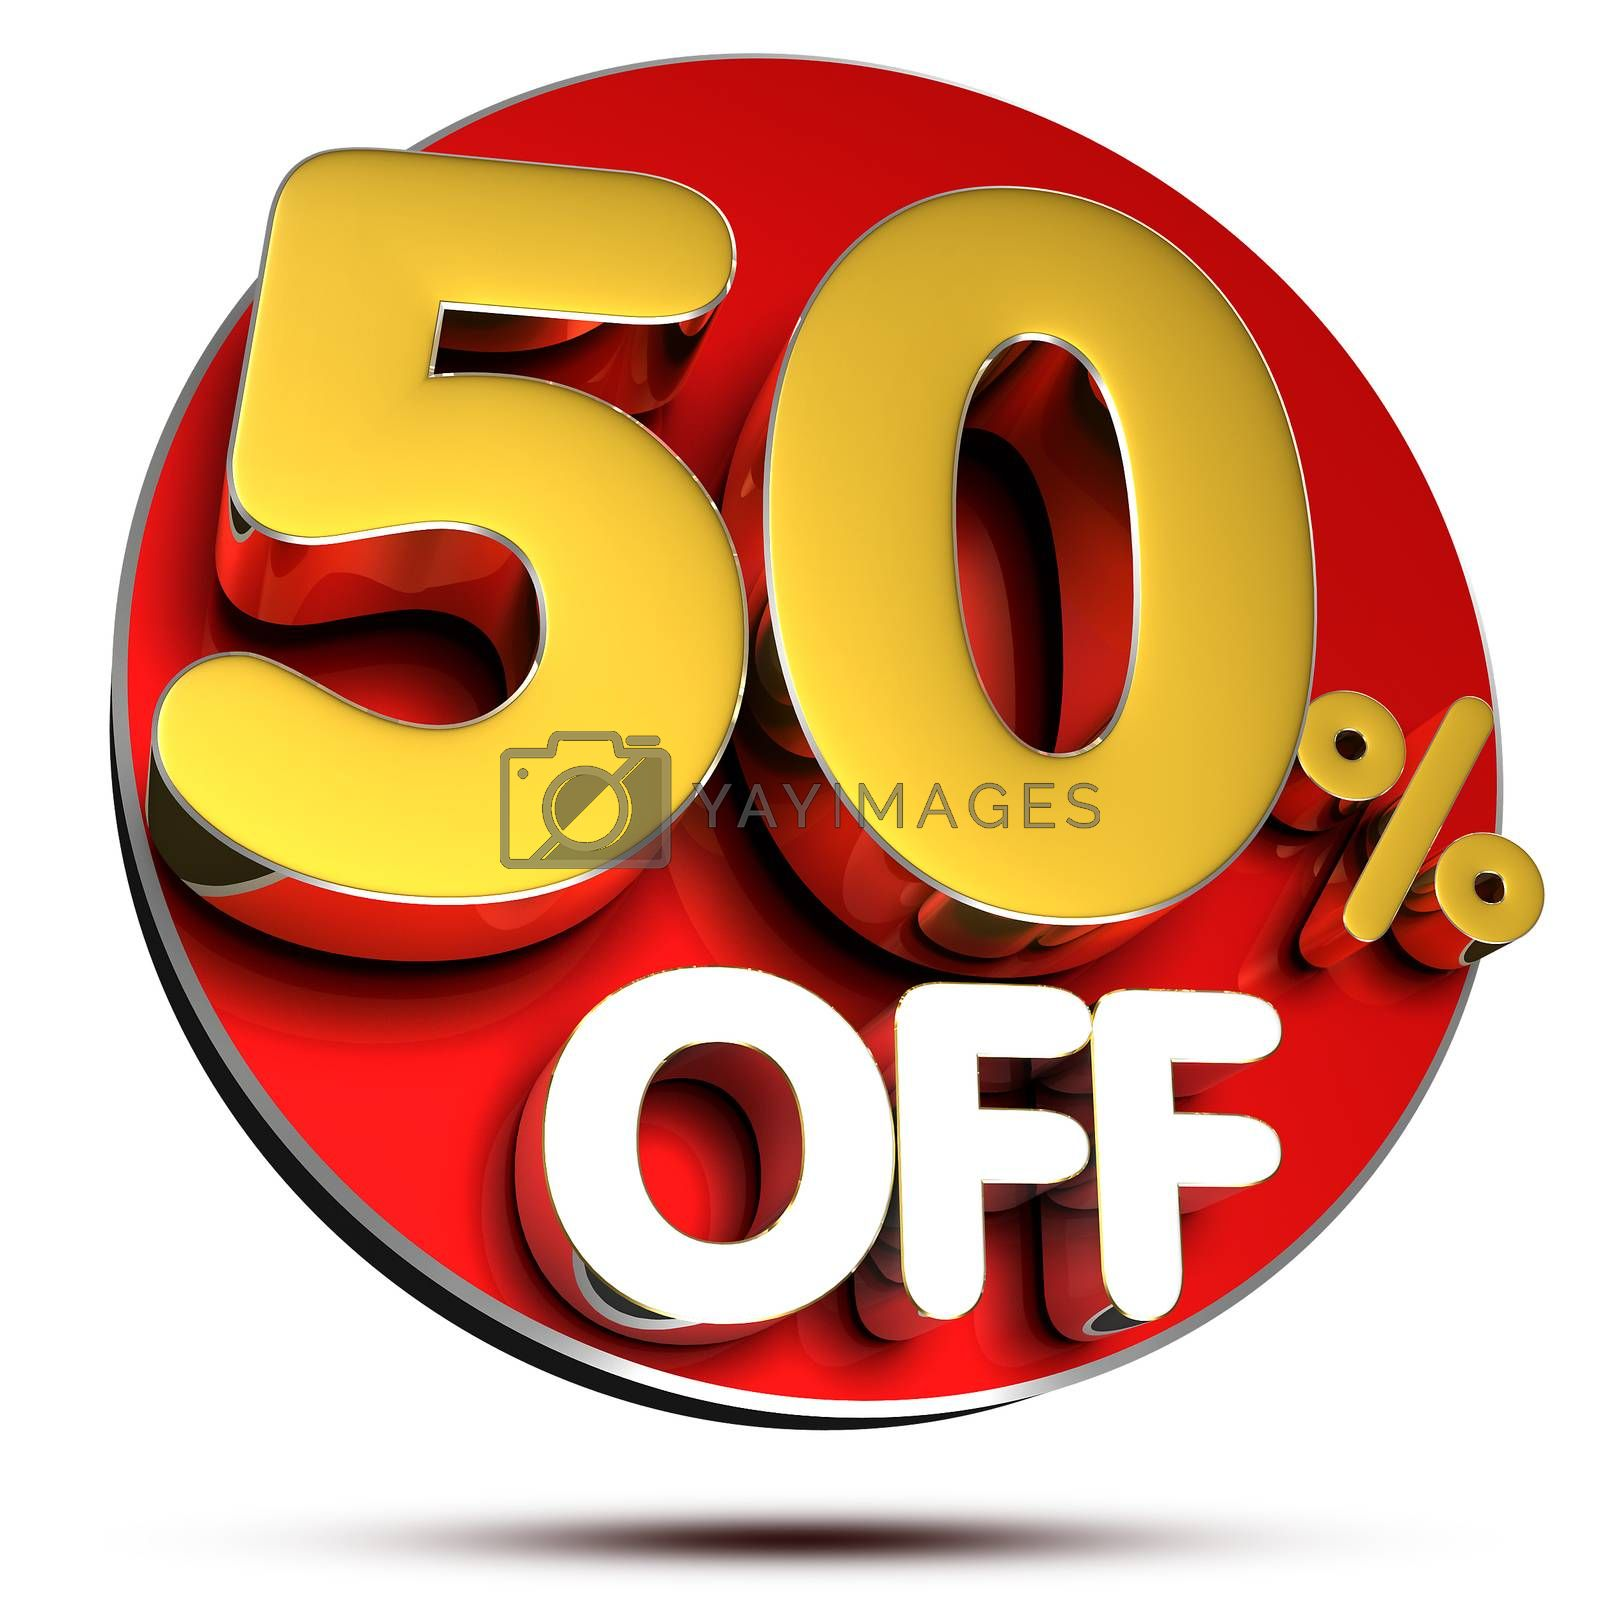 50 percent off 3D. by thitimon